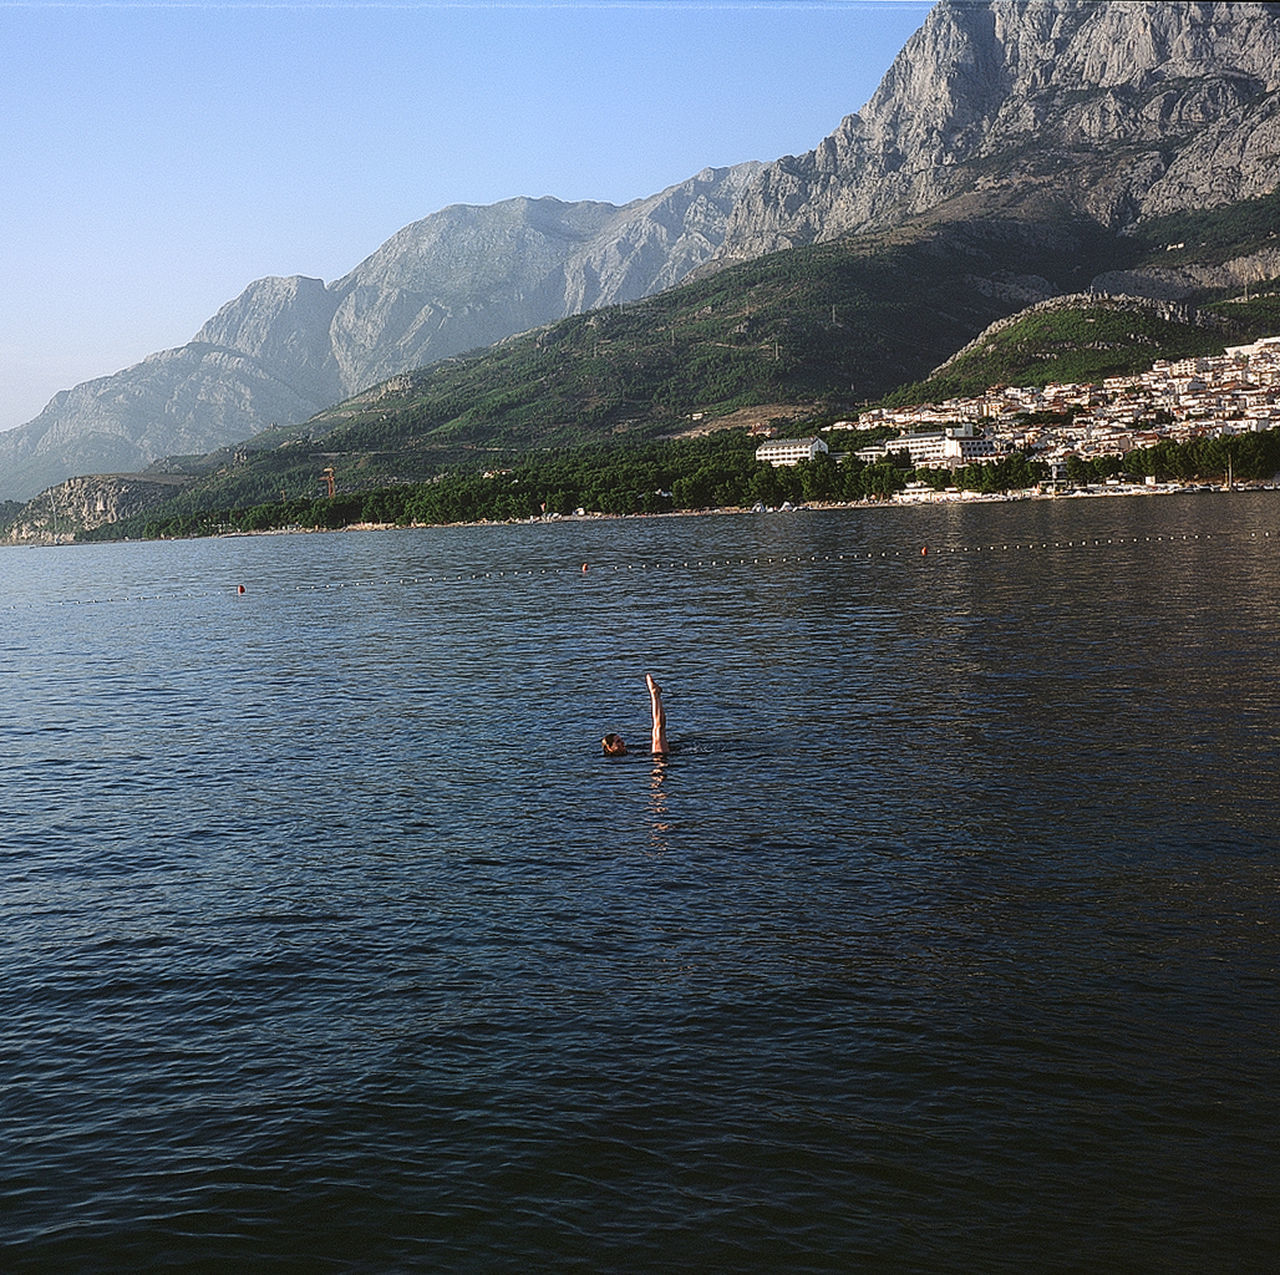 mountain, nature, real people, day, water, beauty in nature, waterfront, scenics, leisure activity, lake, mountain range, outdoors, lifestyles, one person, men, clear sky, paddleboarding, sky, people